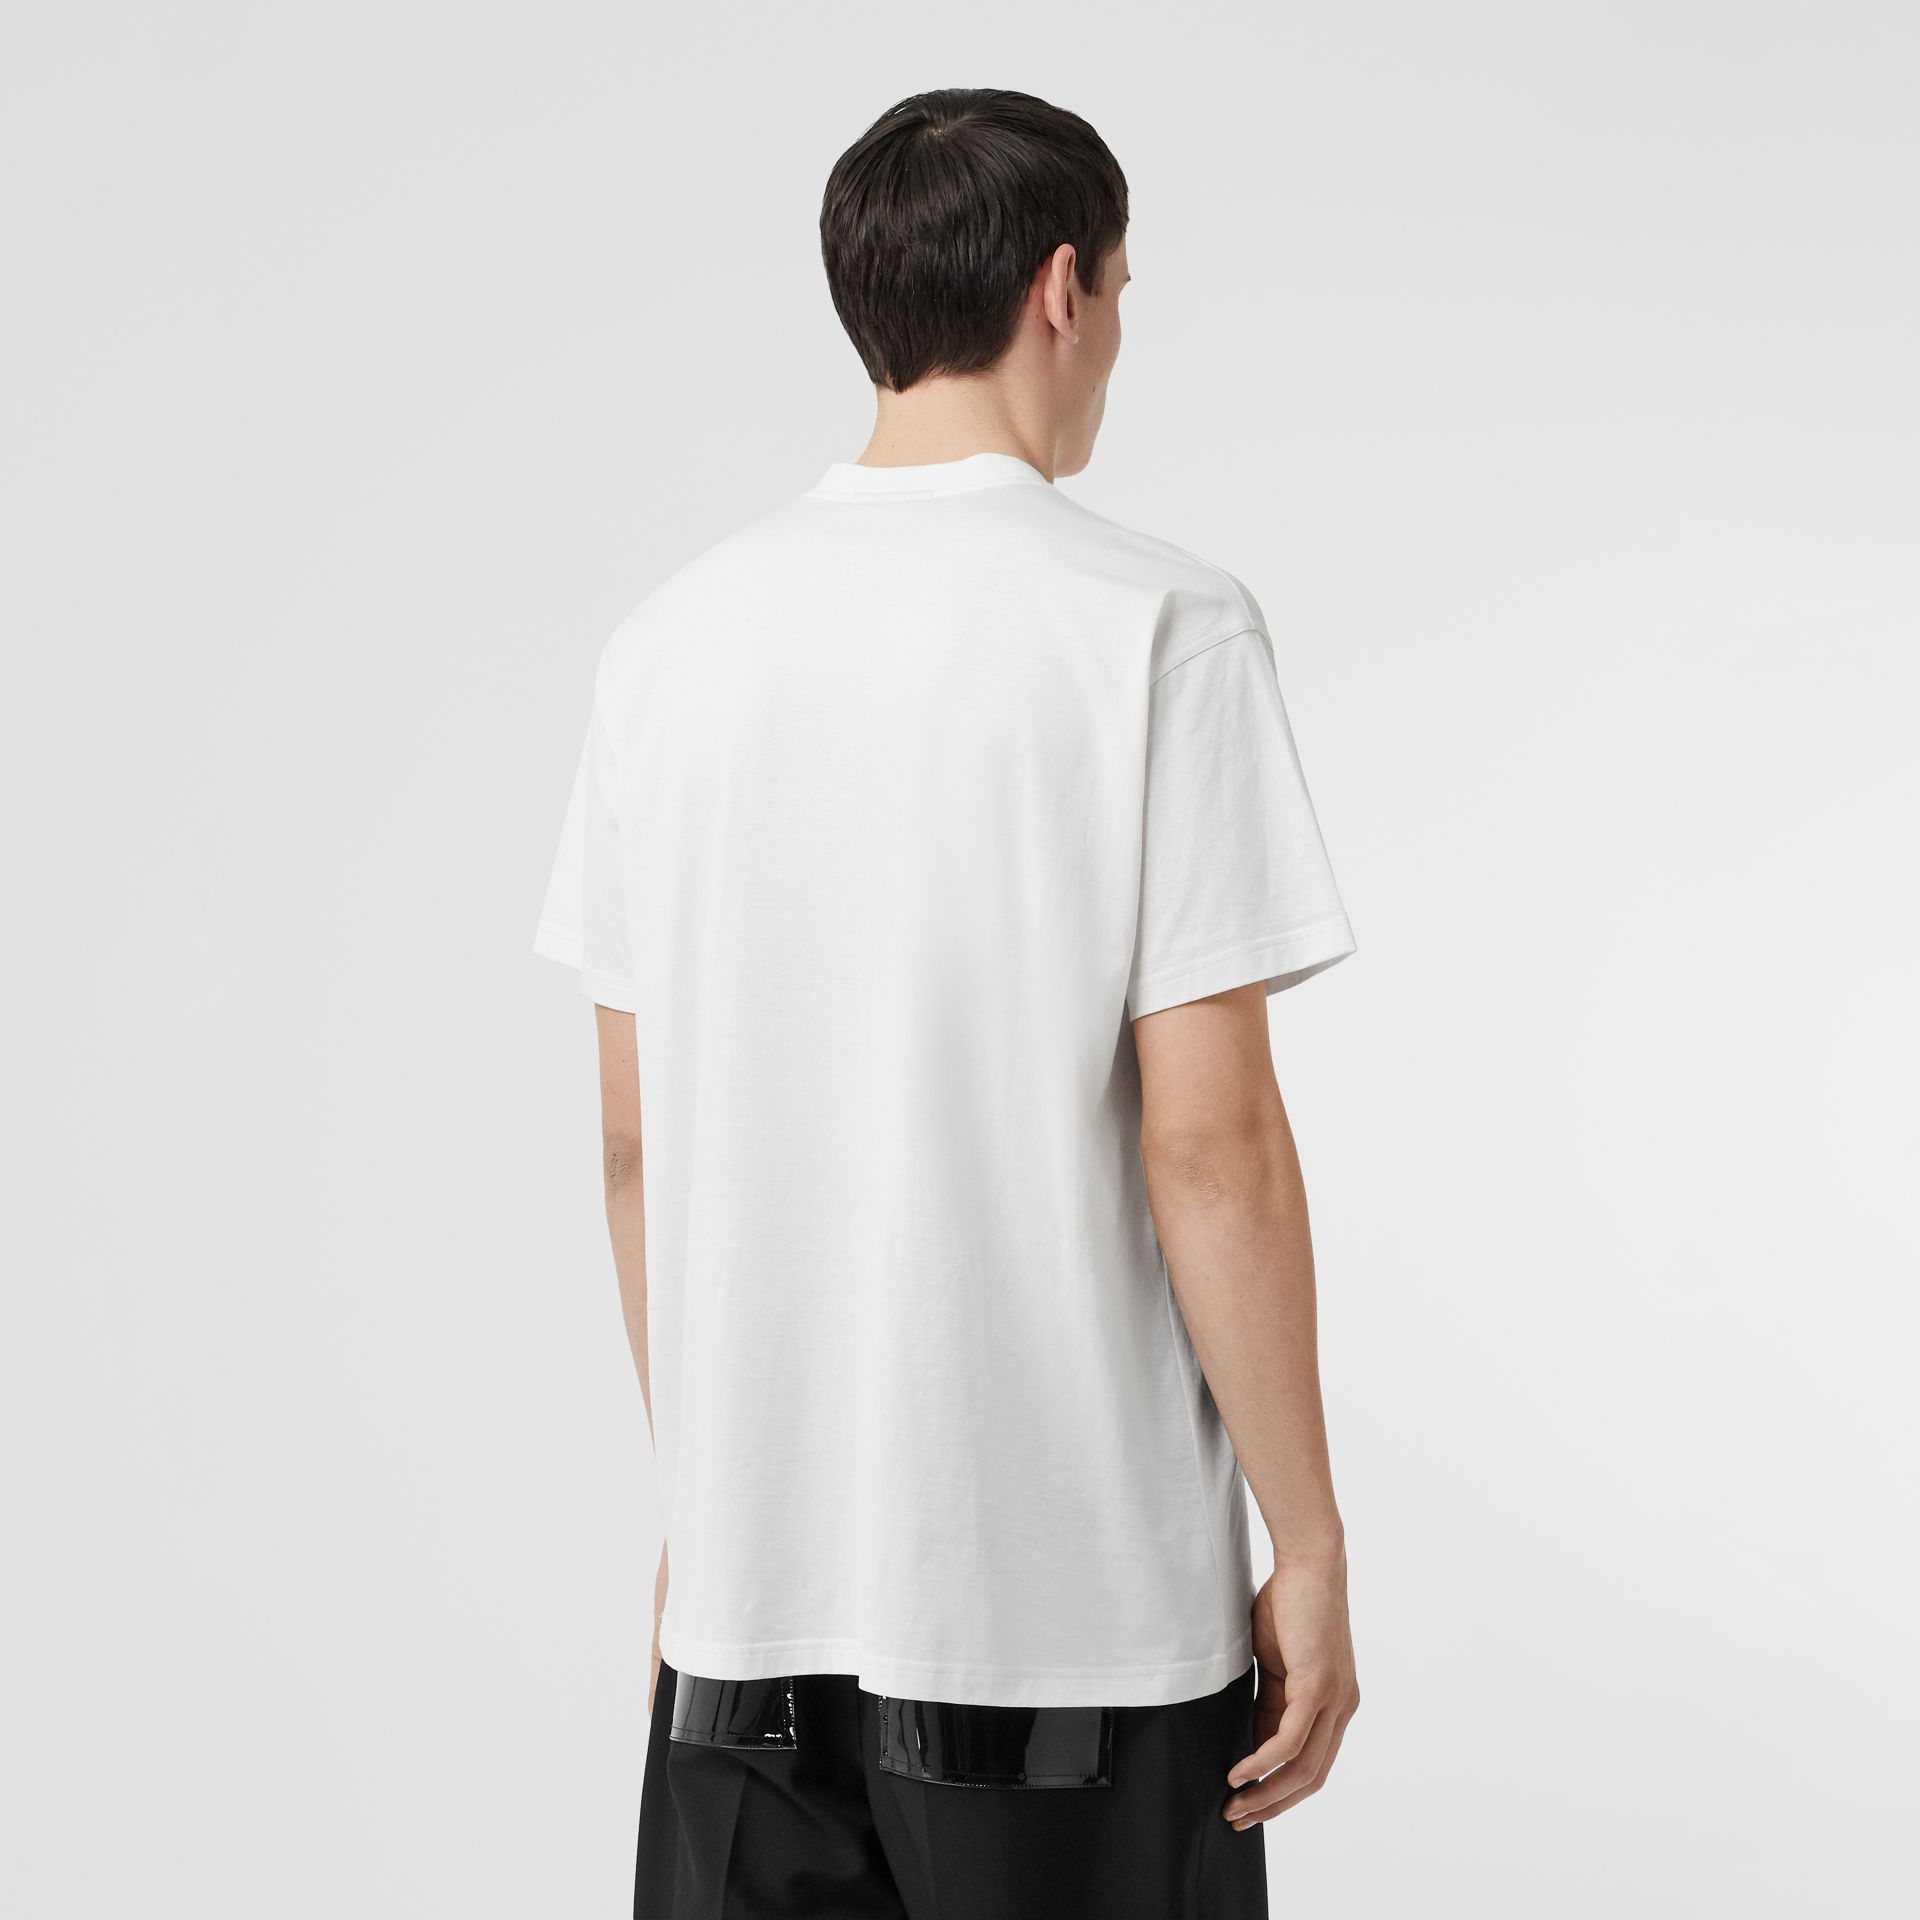 Kingdom Print Cotton T-shirt in White - Men | Burberry United States - gallery image 2